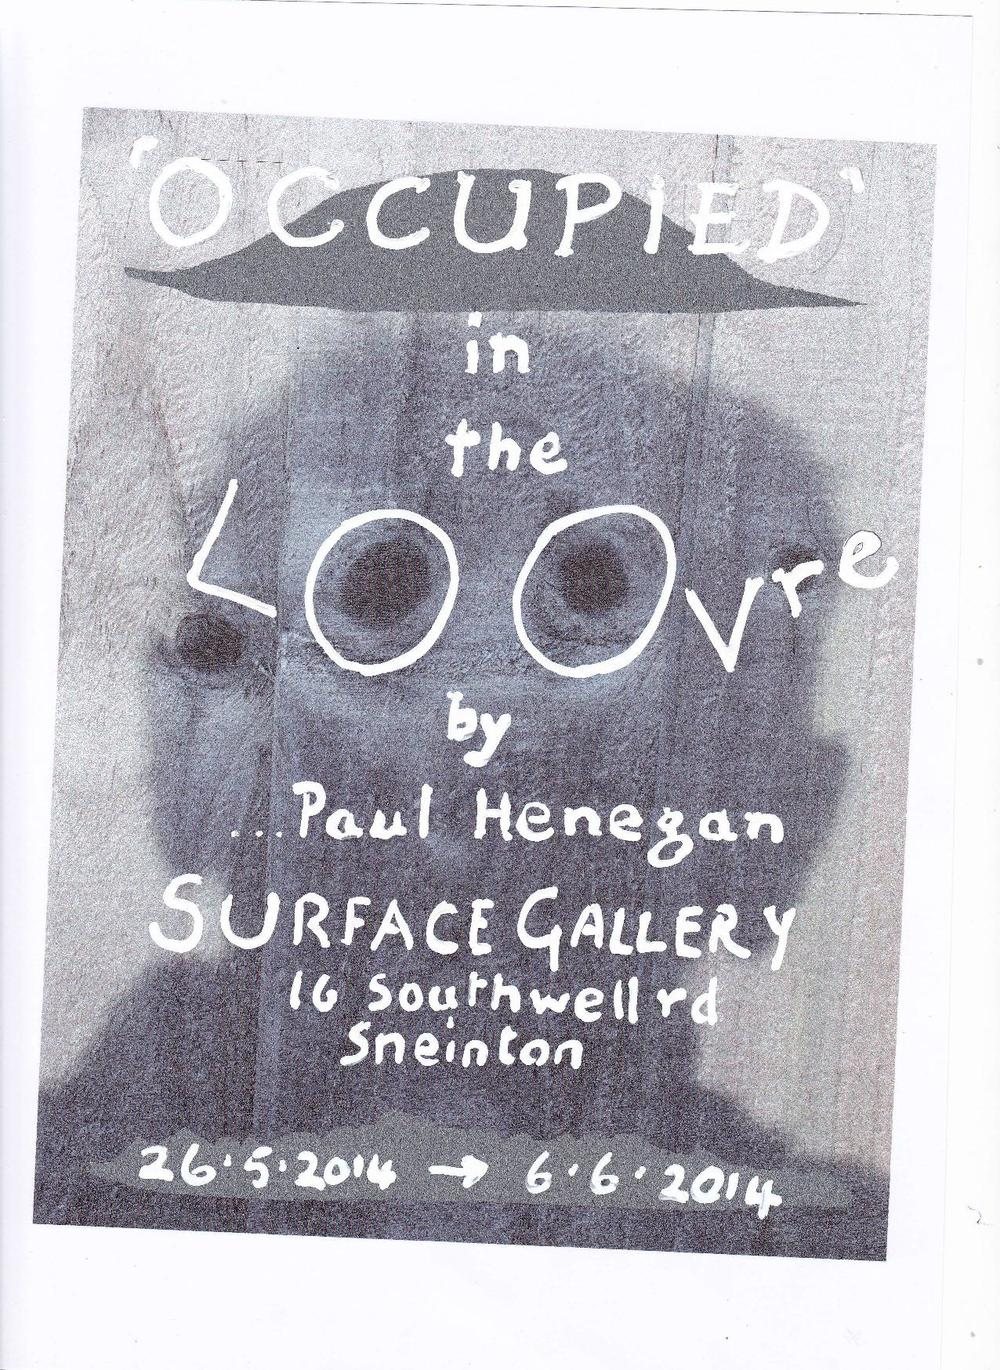 Occupied by Paul Henegan